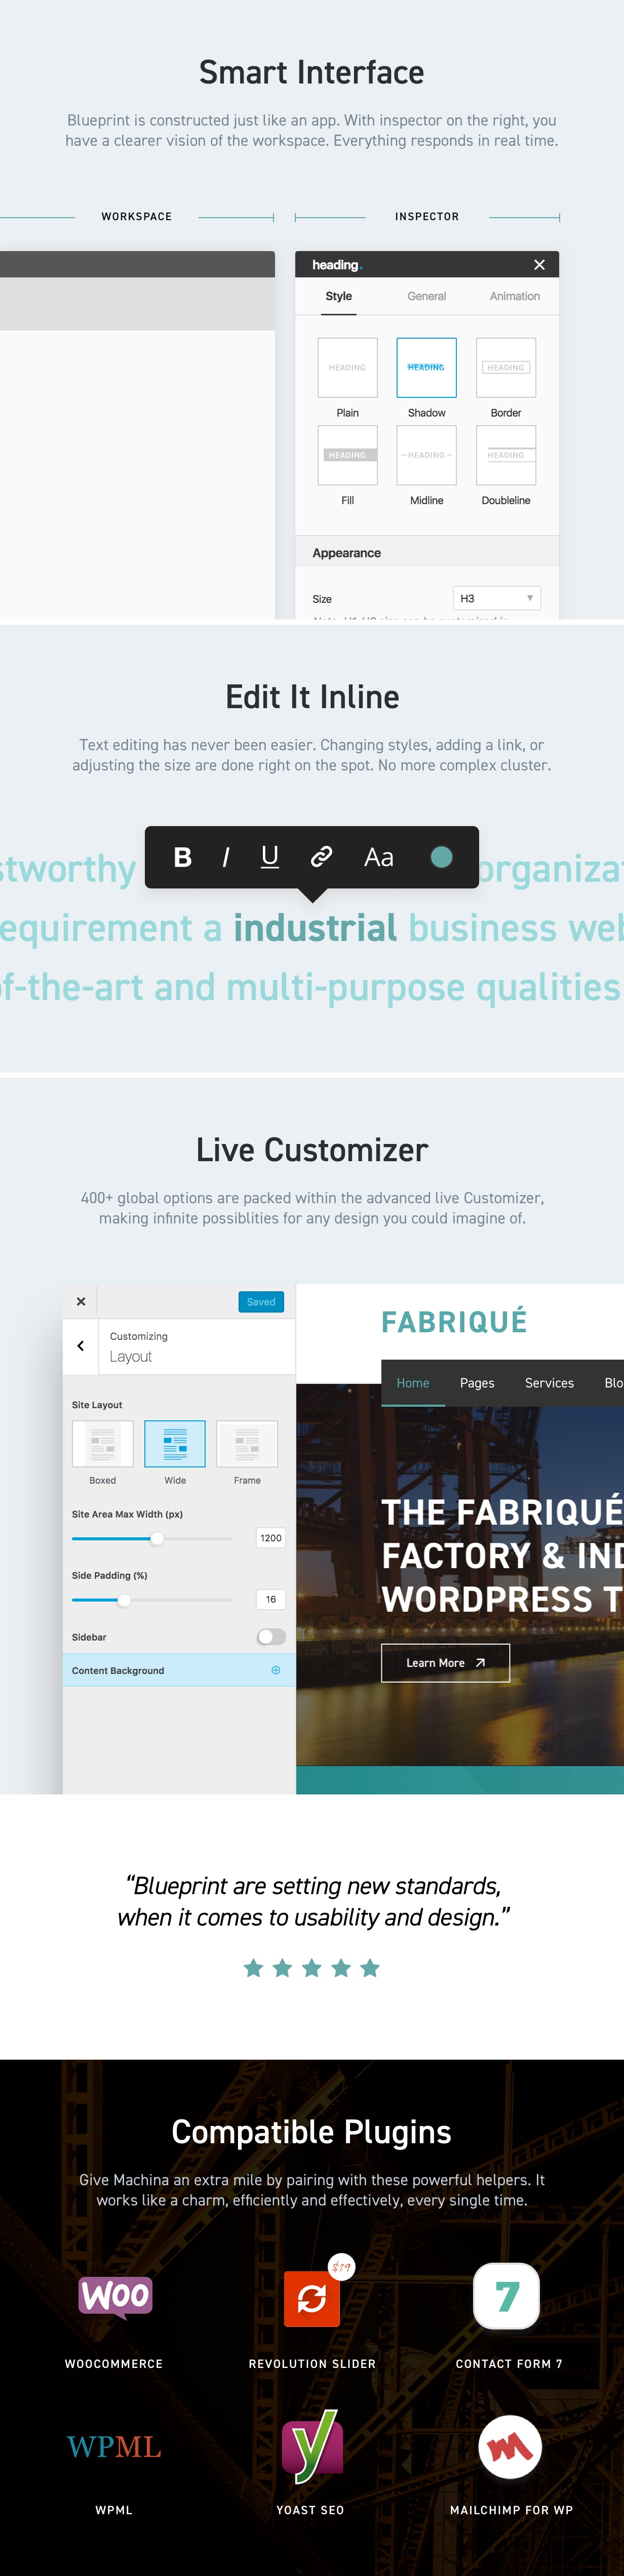 Fabriqu factory industrial business wordpress theme by twisttheme fabriqu is a state of the art multi purpose wordpress theme meticulously designed to cater to factory and manufacturing industry related websites malvernweather Choice Image